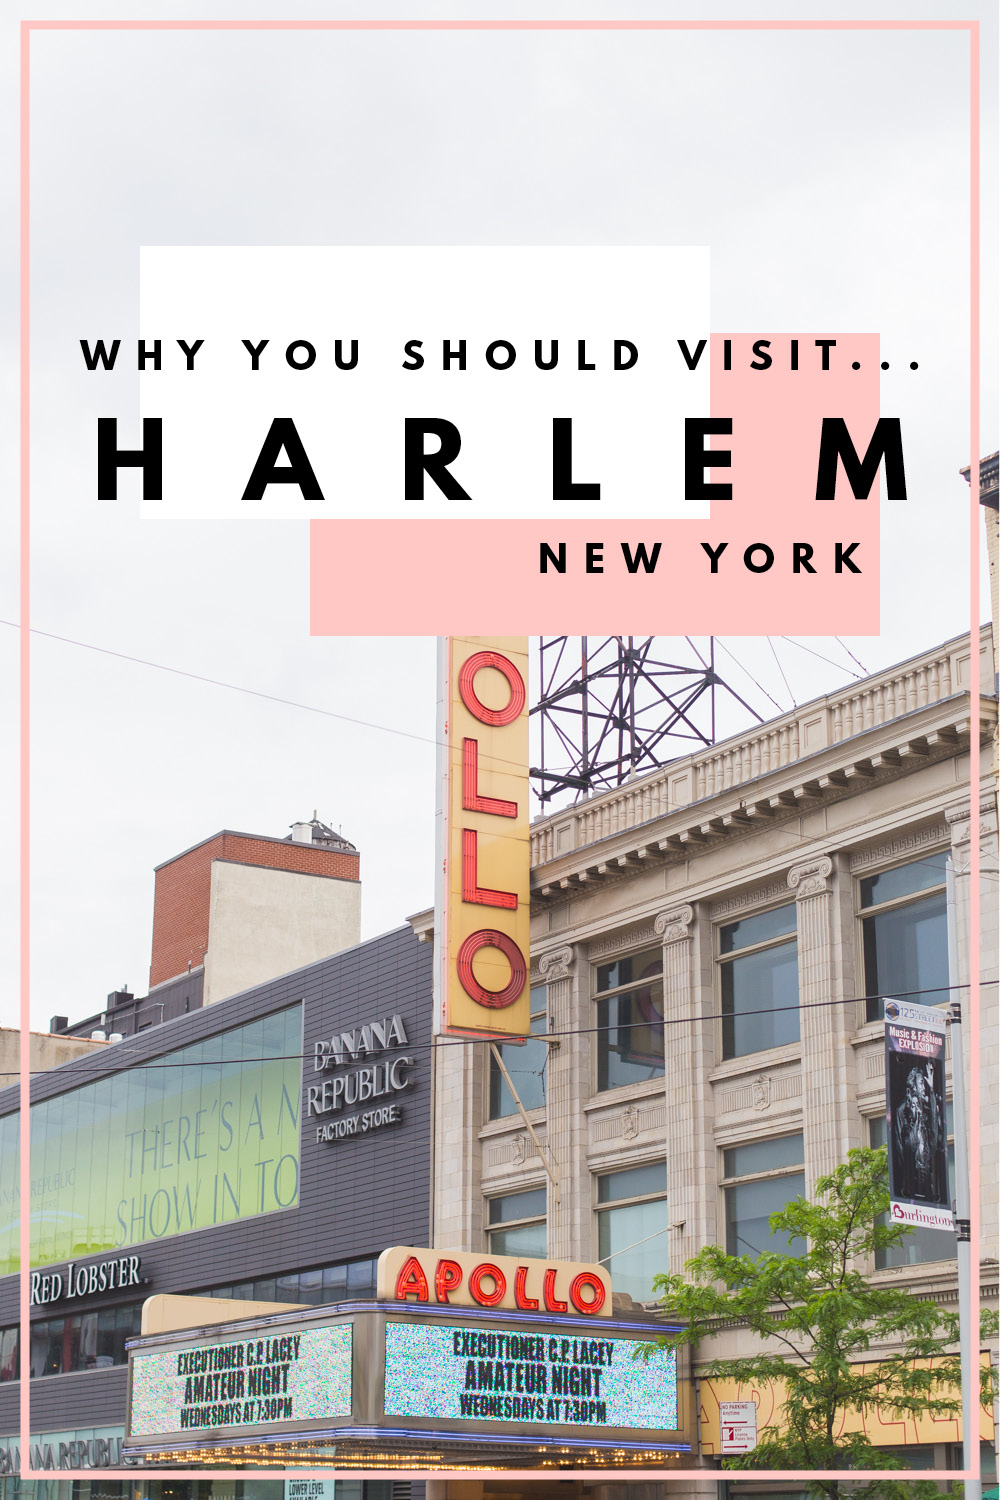 Ever wanted to visit Harlem in New York? I'm championing venturing away from the typical parts of Manhattan & exploring a place rich in culture and history.